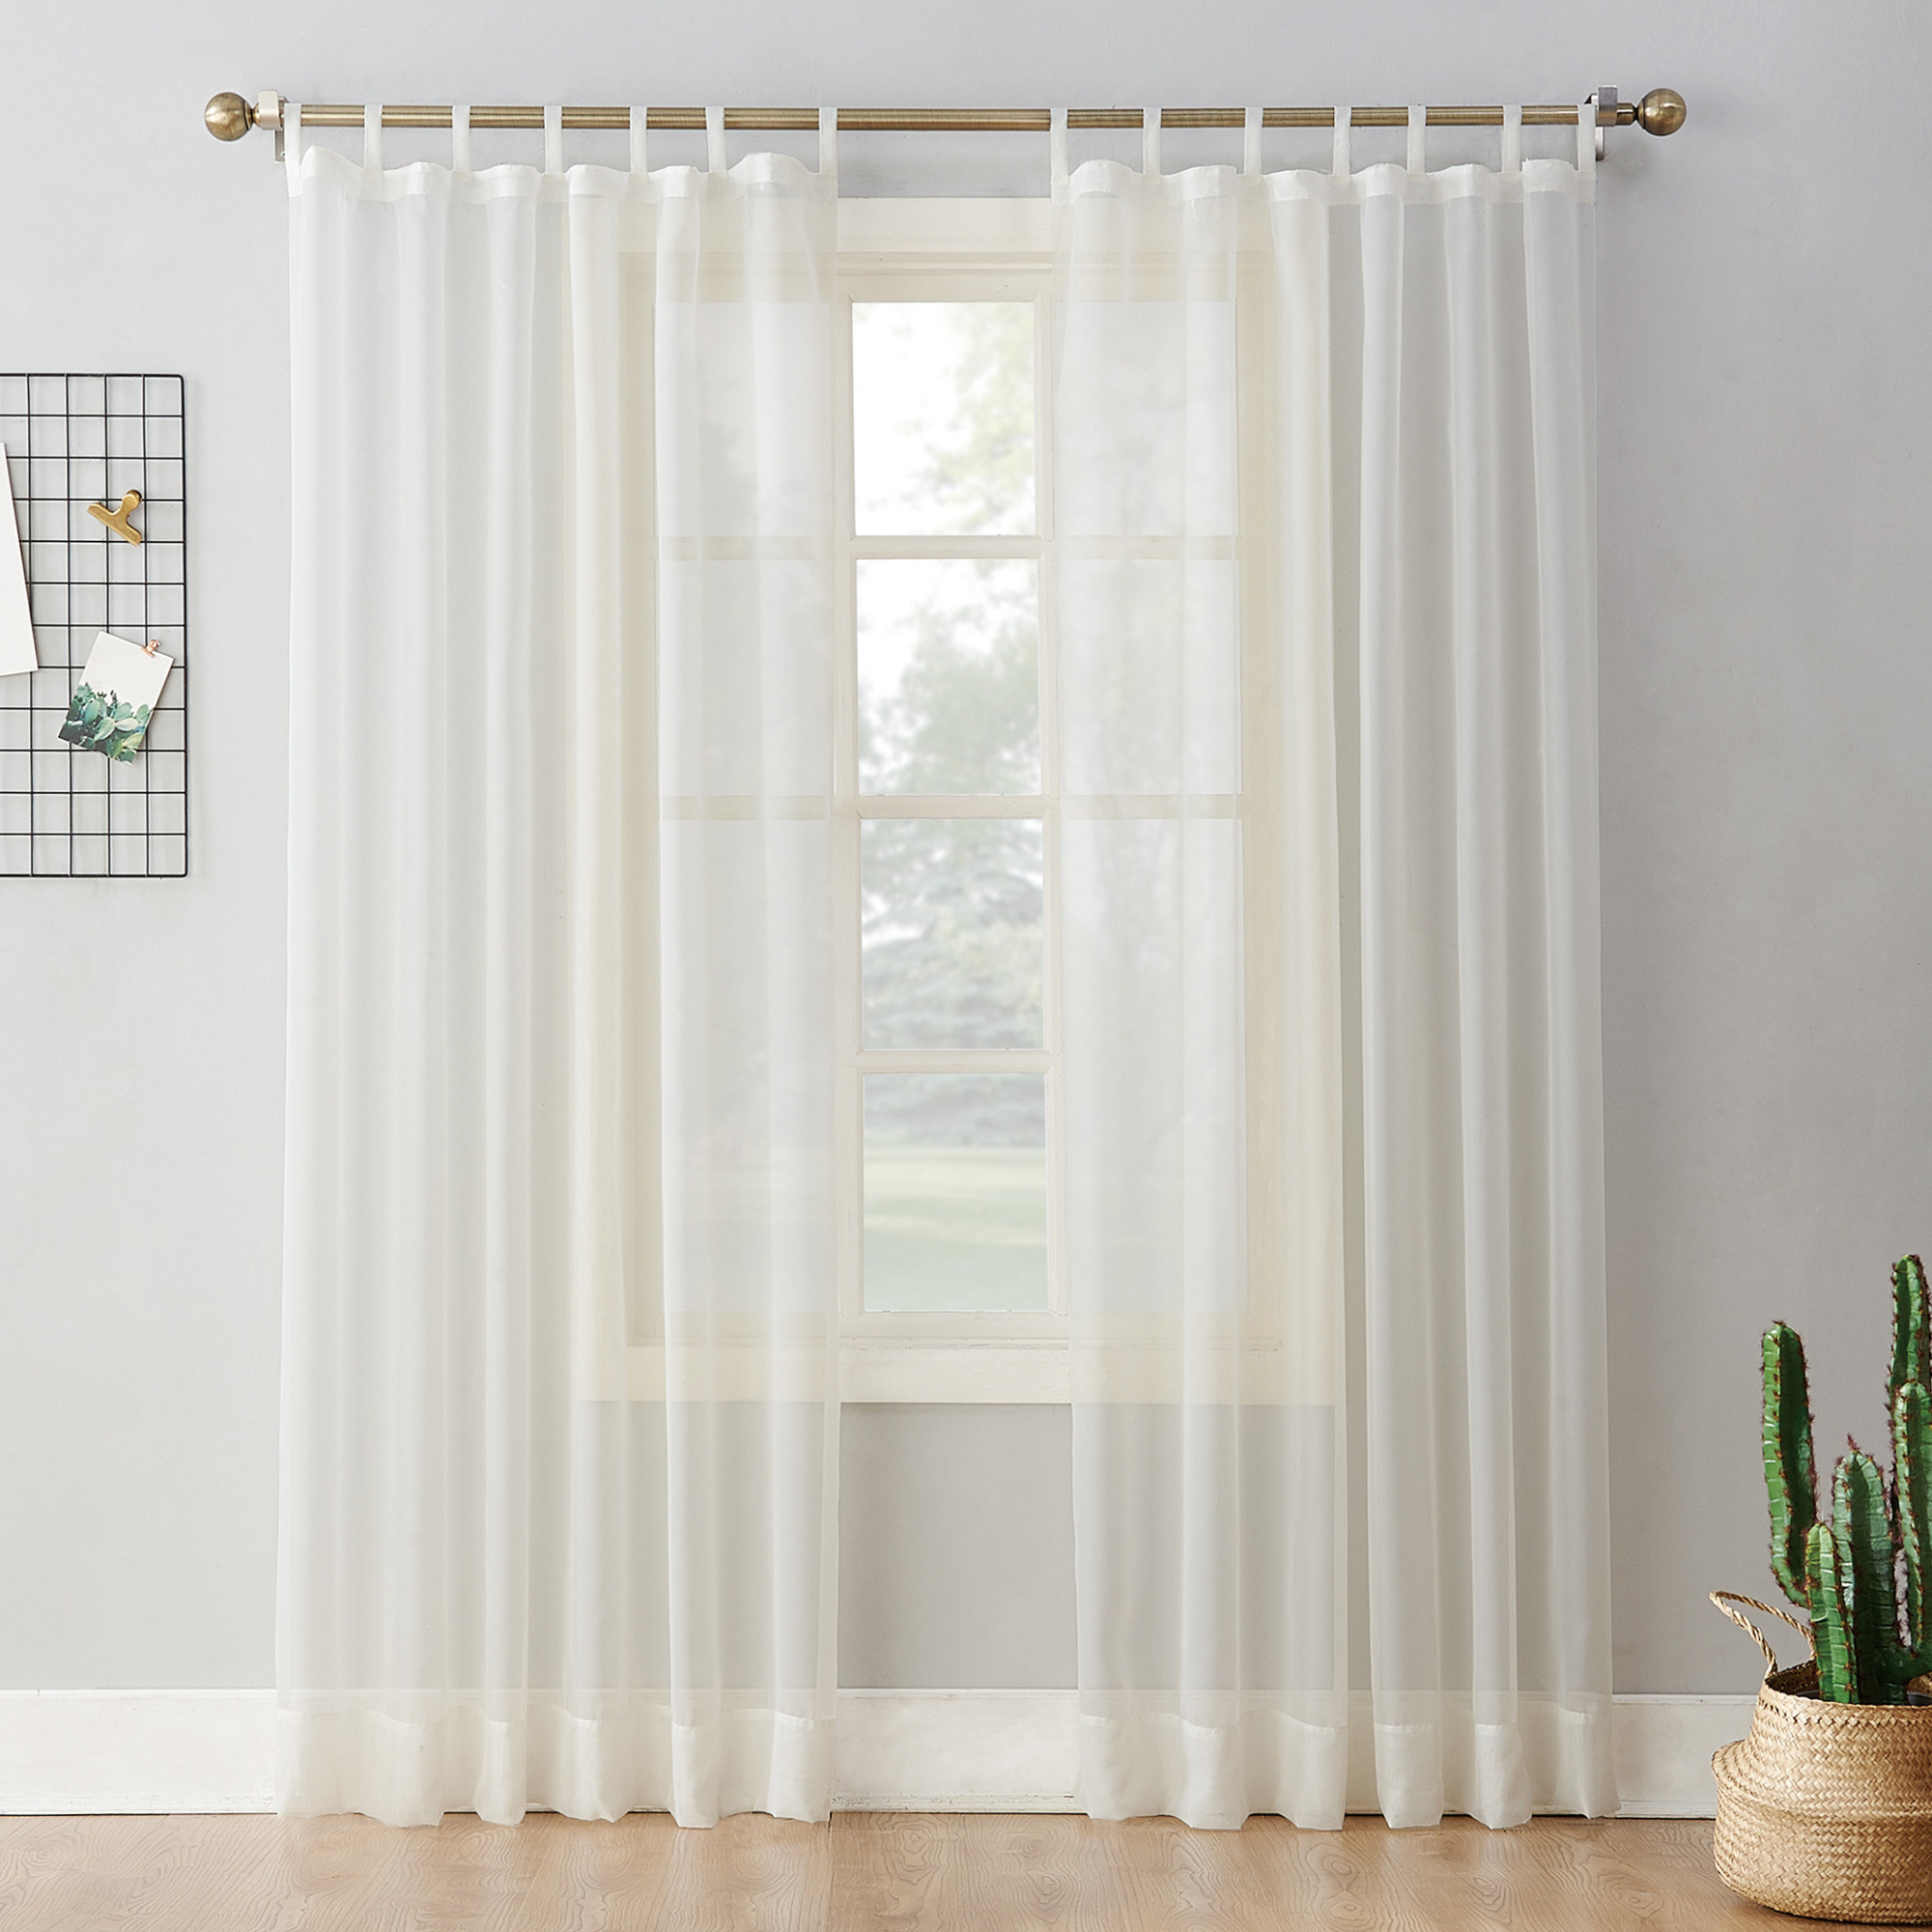 The curtains in the color Eggshell